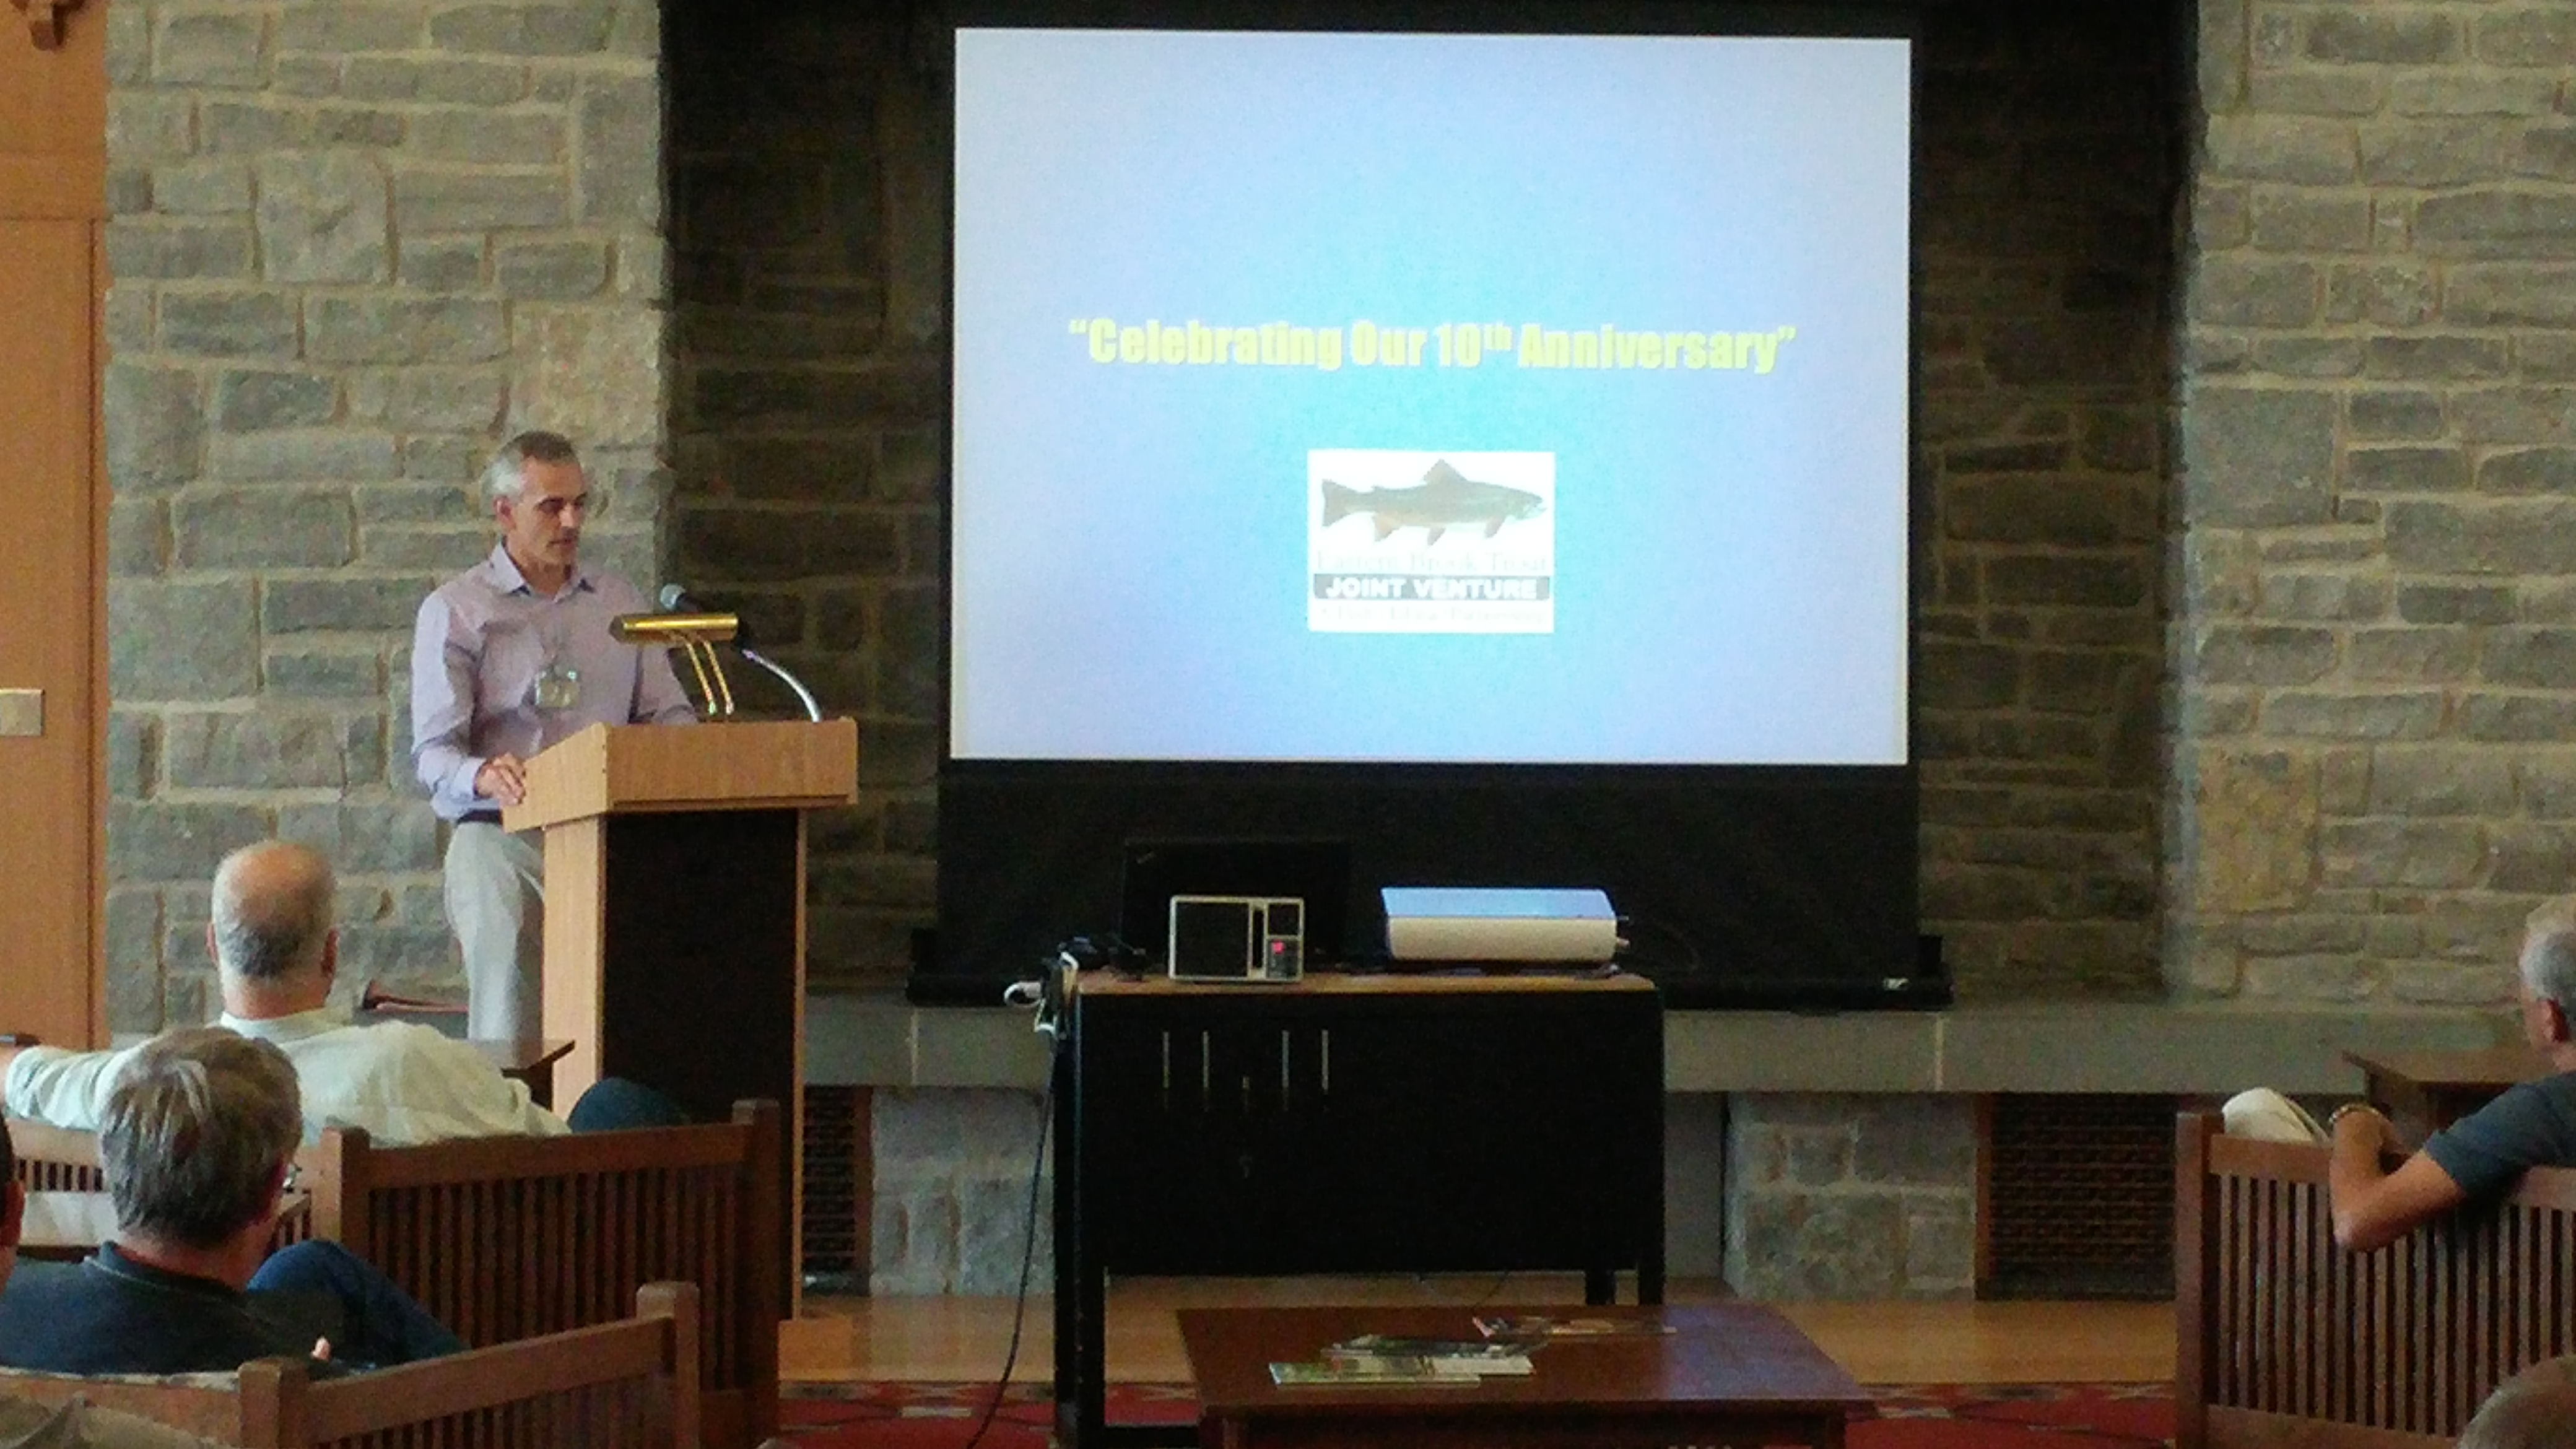 Doug Besler Welcomes Everyone to the 10th Anniversary Meeting - Photo 2